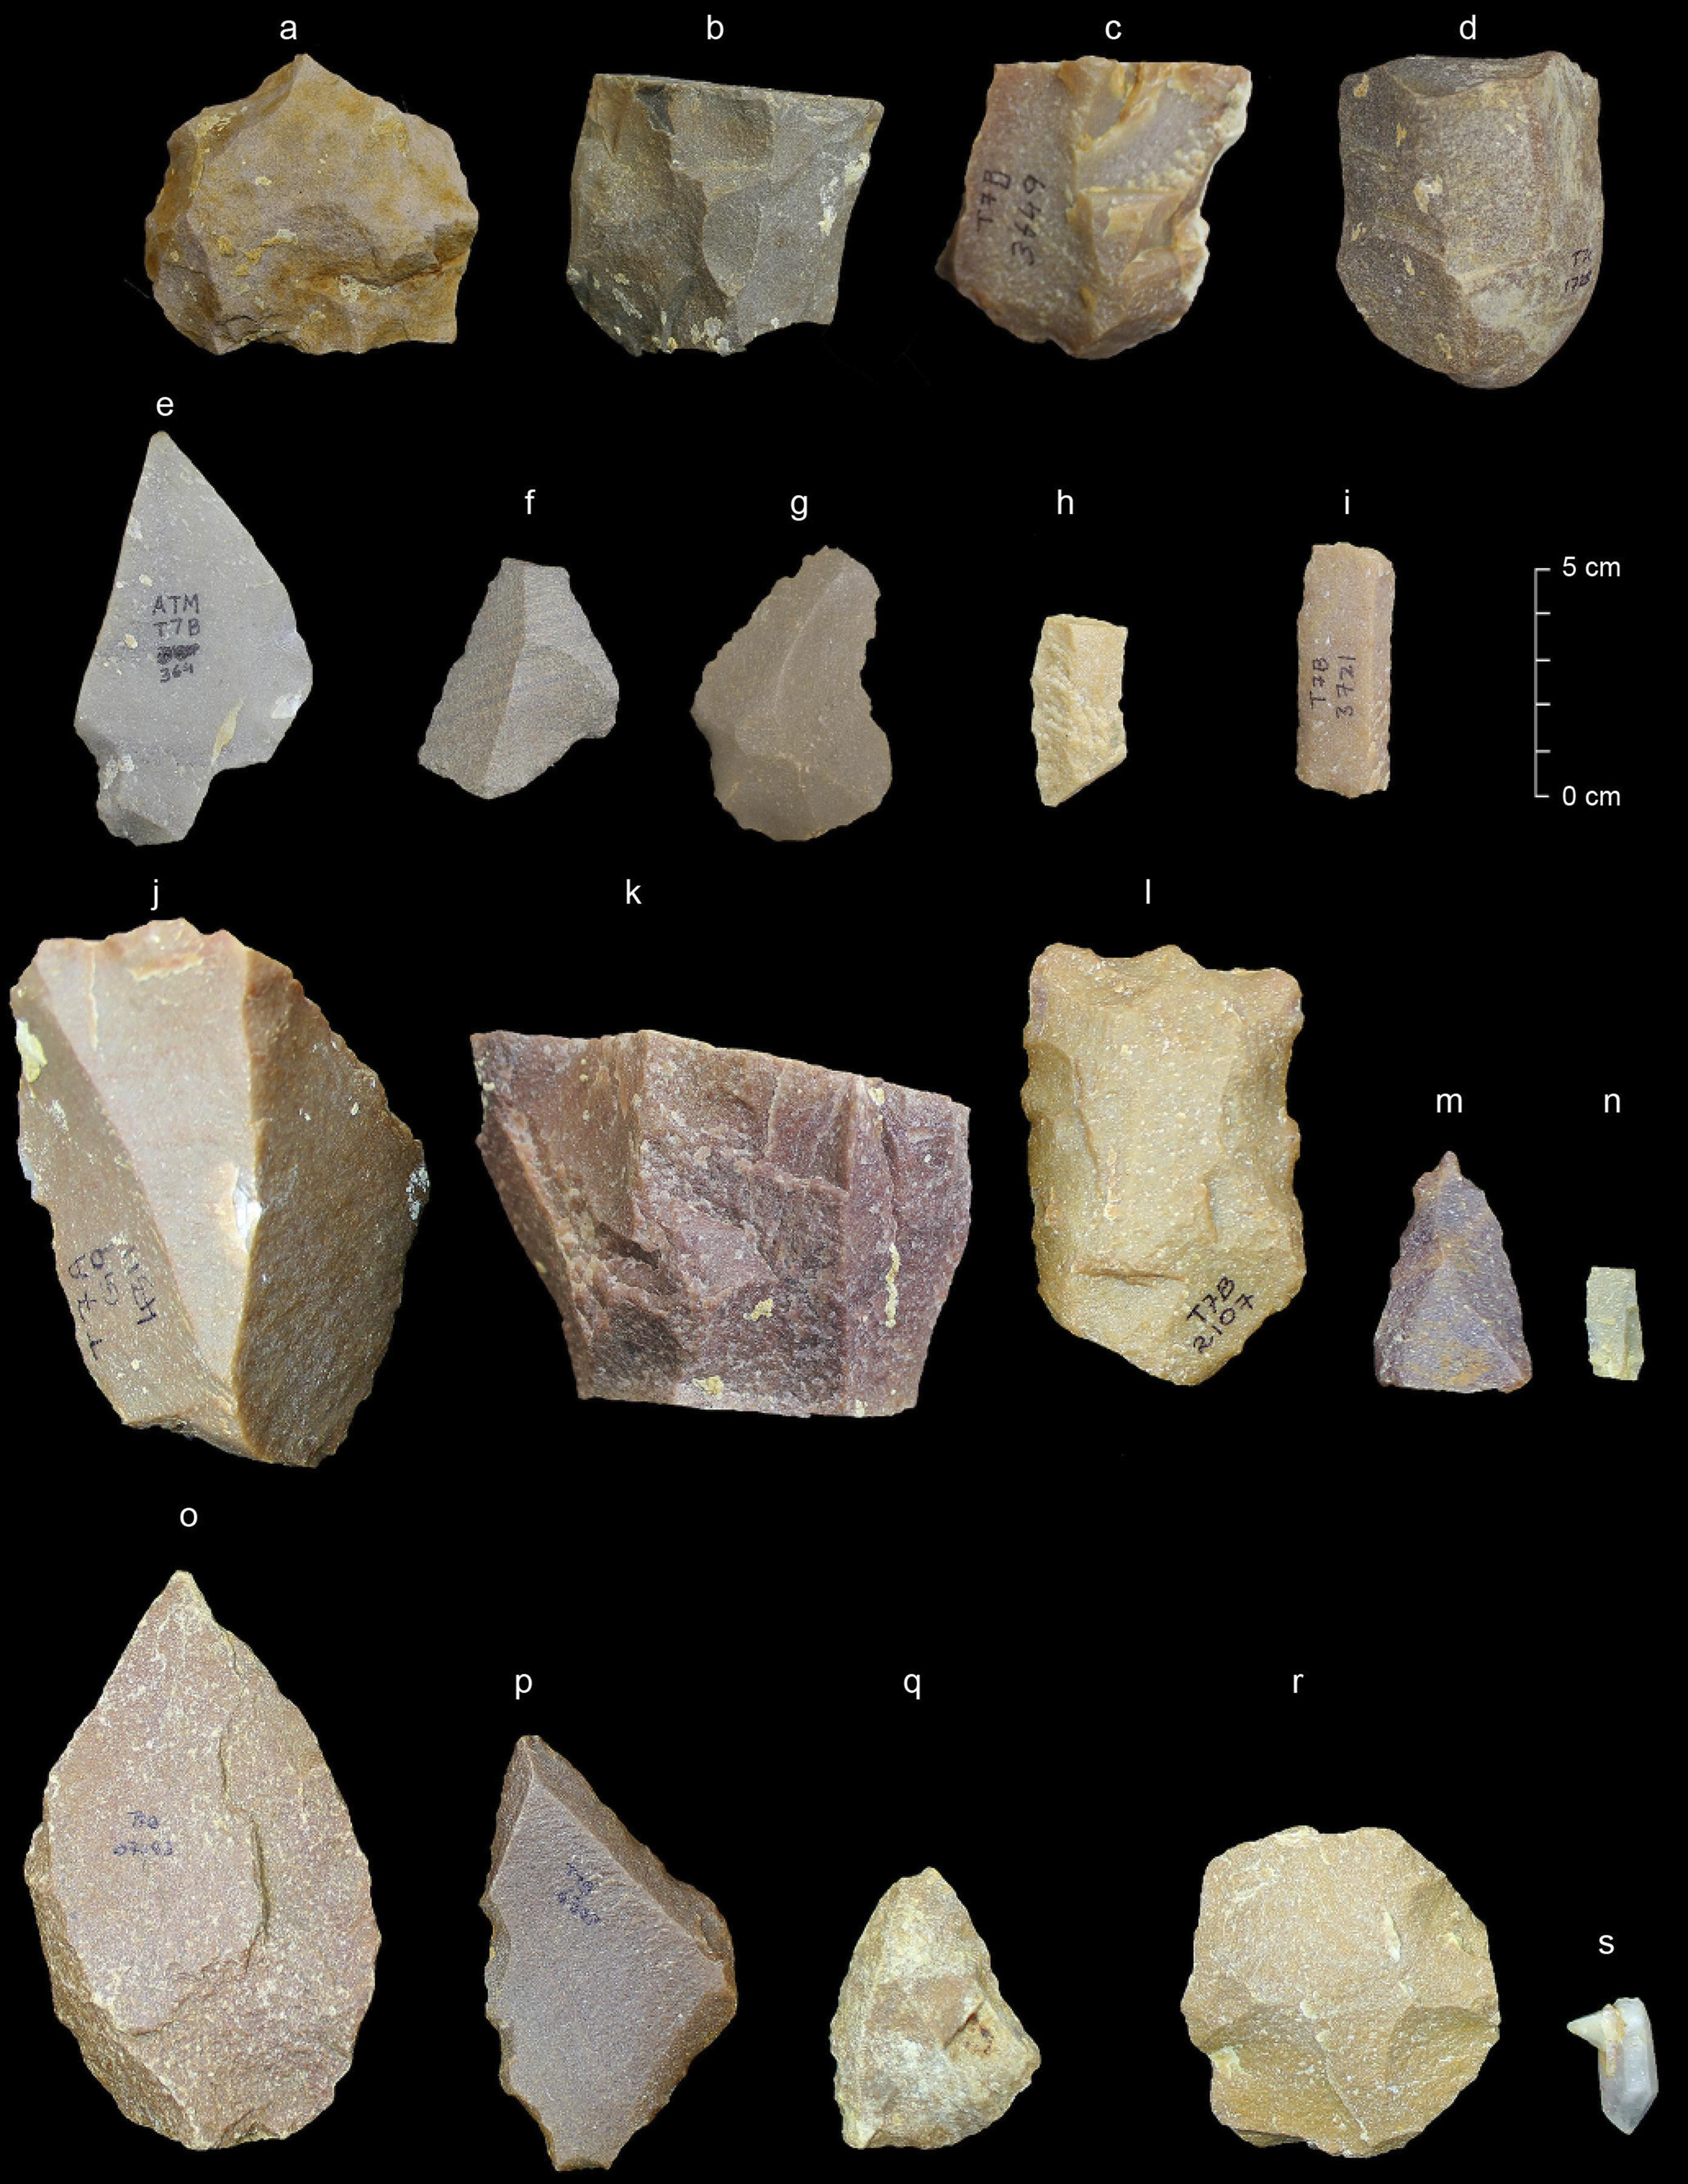 This image provided by the Sharma Centre for Heritage Education, India in January 2018 shows a sample of artifacts from the Middle Palaeolithic era found at the Attirampakkam archaeological site in southern India. The discovery of stone tools at the site shows a style that has been associated elsewhere with our species. They were fashioned from 385,000 years ago to 172,000 years ago, showing evidence of continuity and development over that time. That starting point is a lot earlier than scientists generally think Homo sapiens left Africa. (Kumar Akhilesh, Shanti Pappu/Sharma Centre for Heritage Education, India via AP) ORG XMIT: NY949